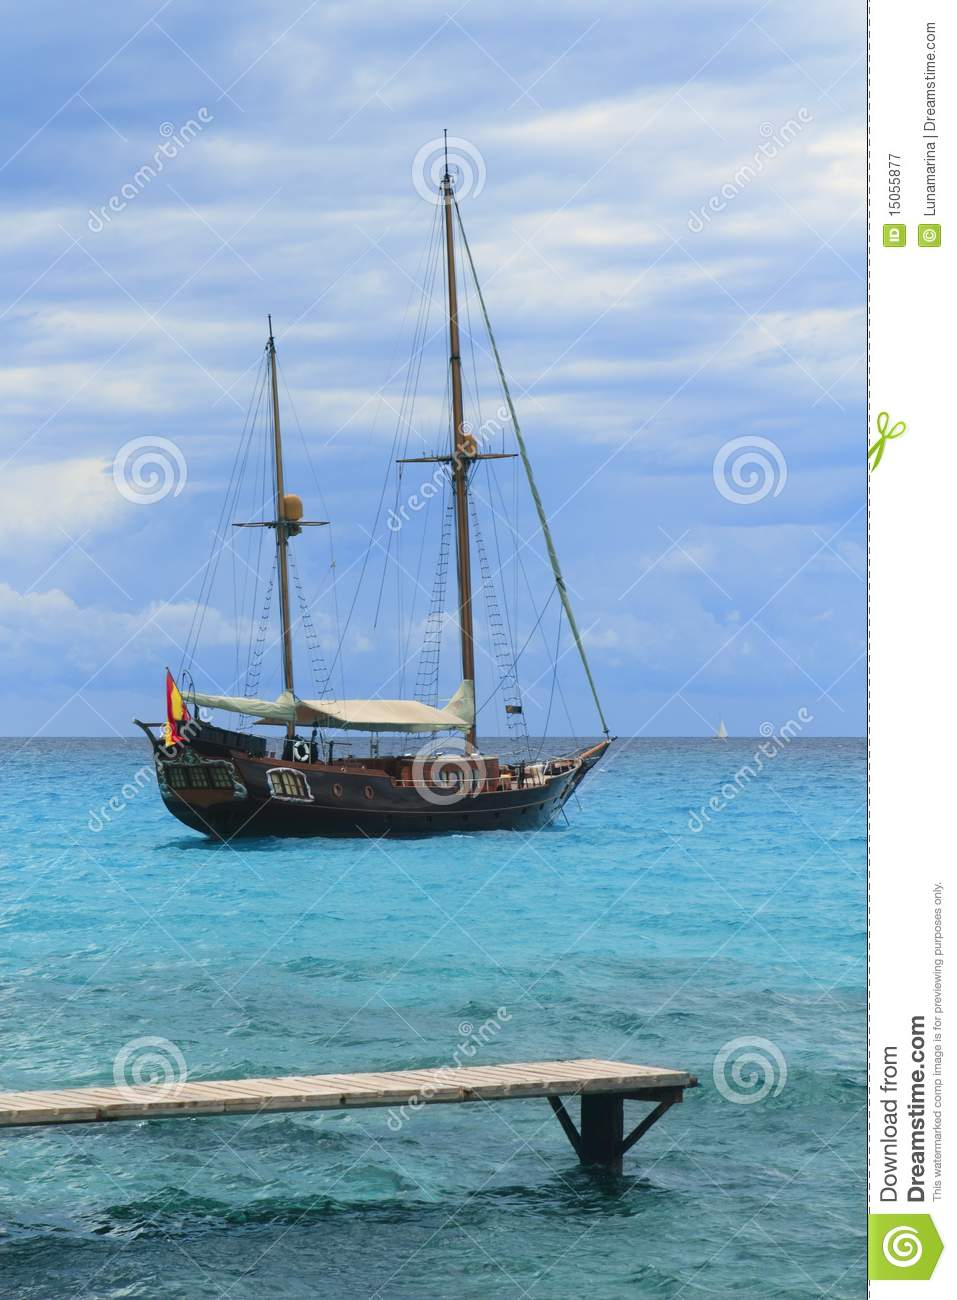 Pirates Inspired Wood Sailboat Anchored Turquoise Royalty Free Stock Photography - Image: 15055877